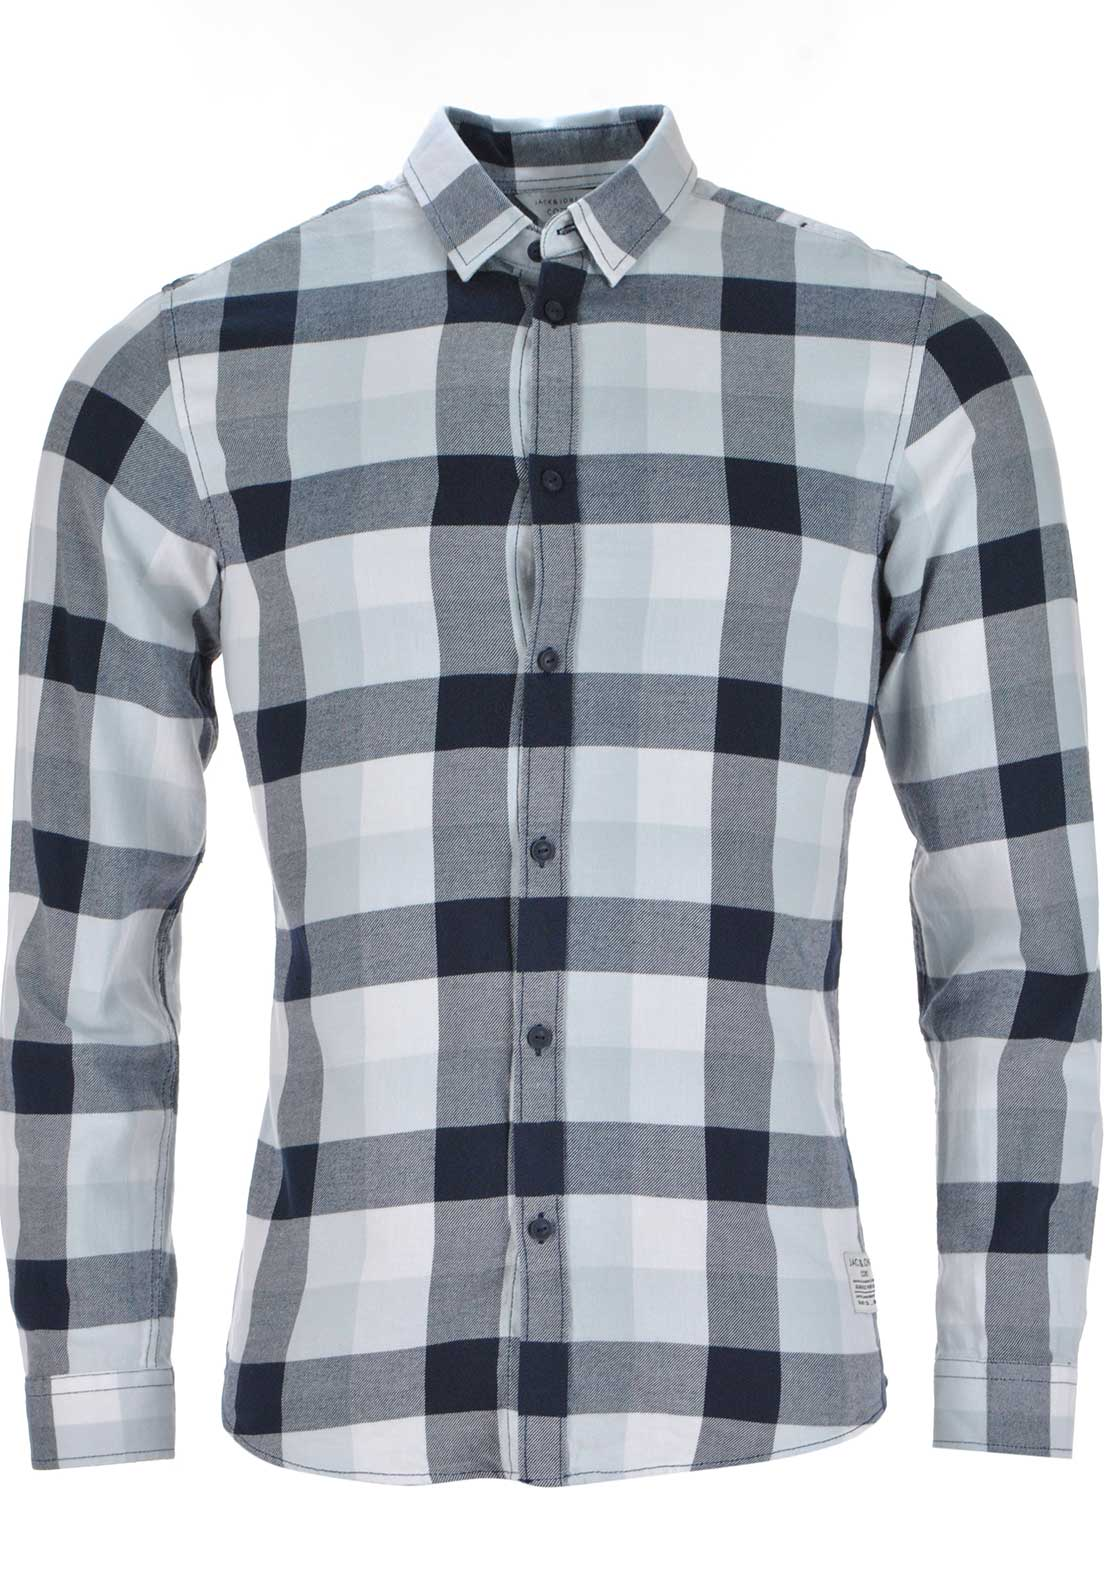 Jack & Jones Gavin Checked Long Sleeve Shirt, Grey Dawn